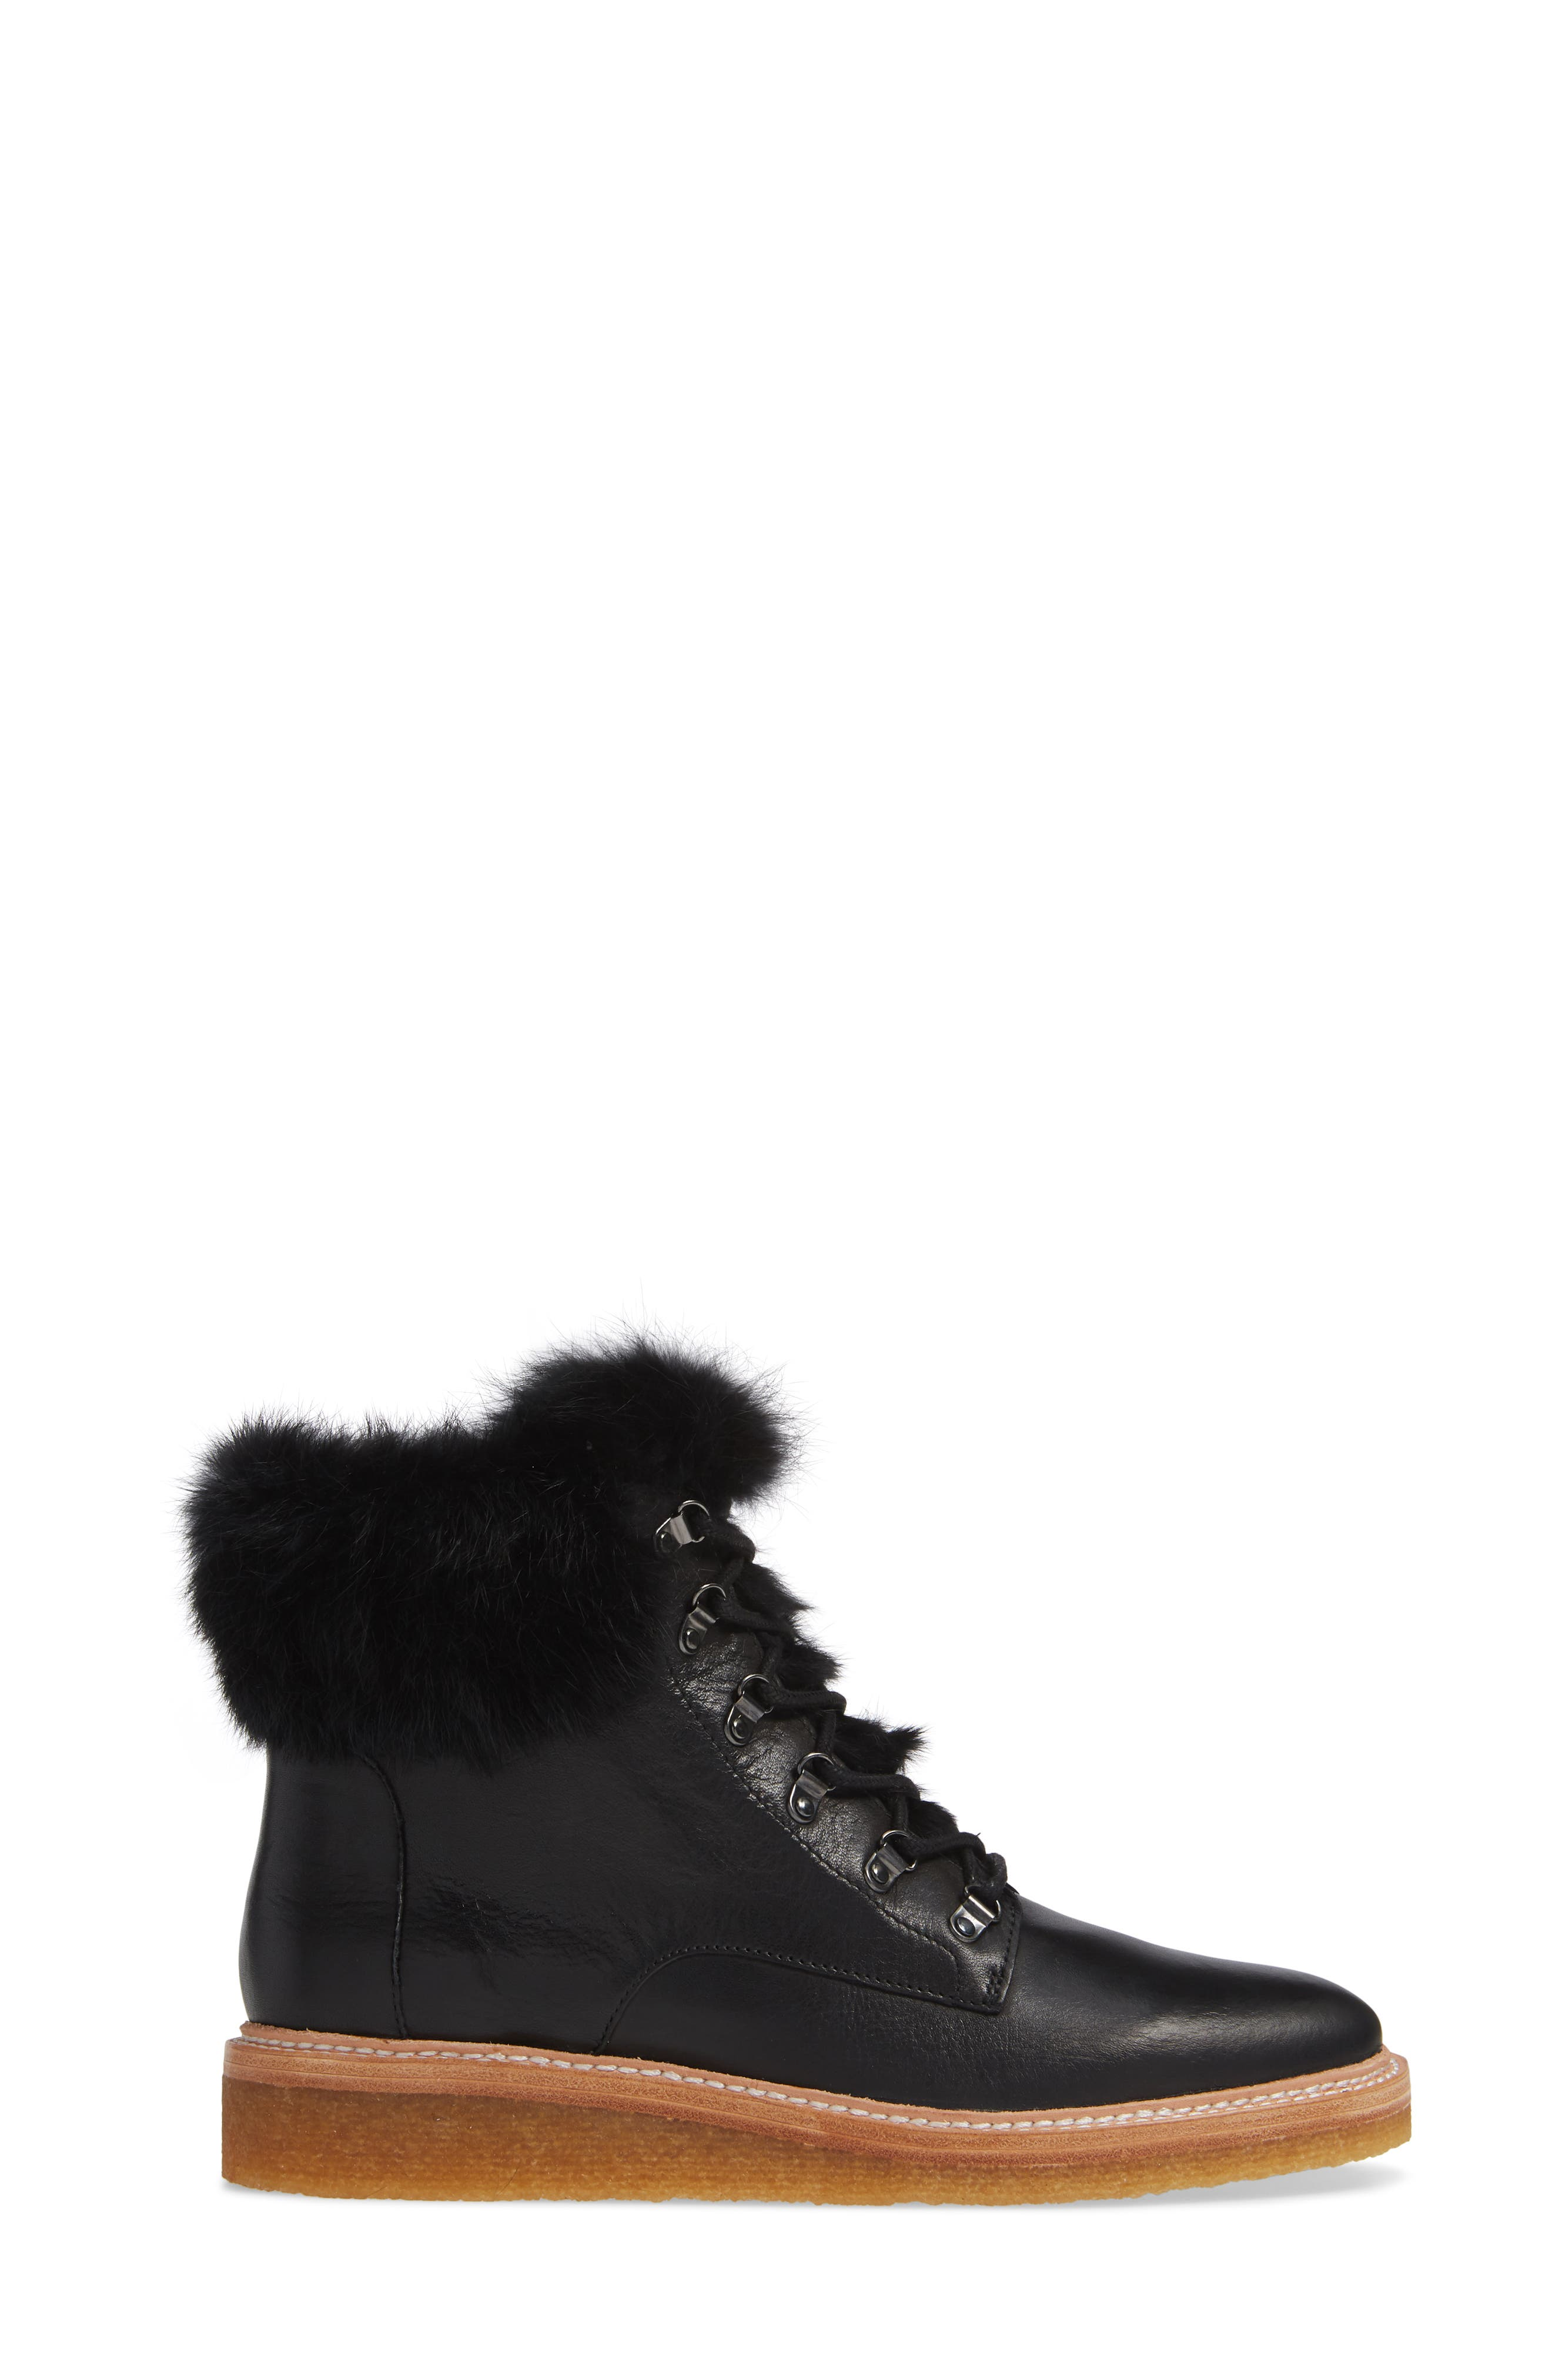 Winter Genuine Rabbit Fur Trim Boot,                             Alternate thumbnail 3, color,                             BLACK LEATHER